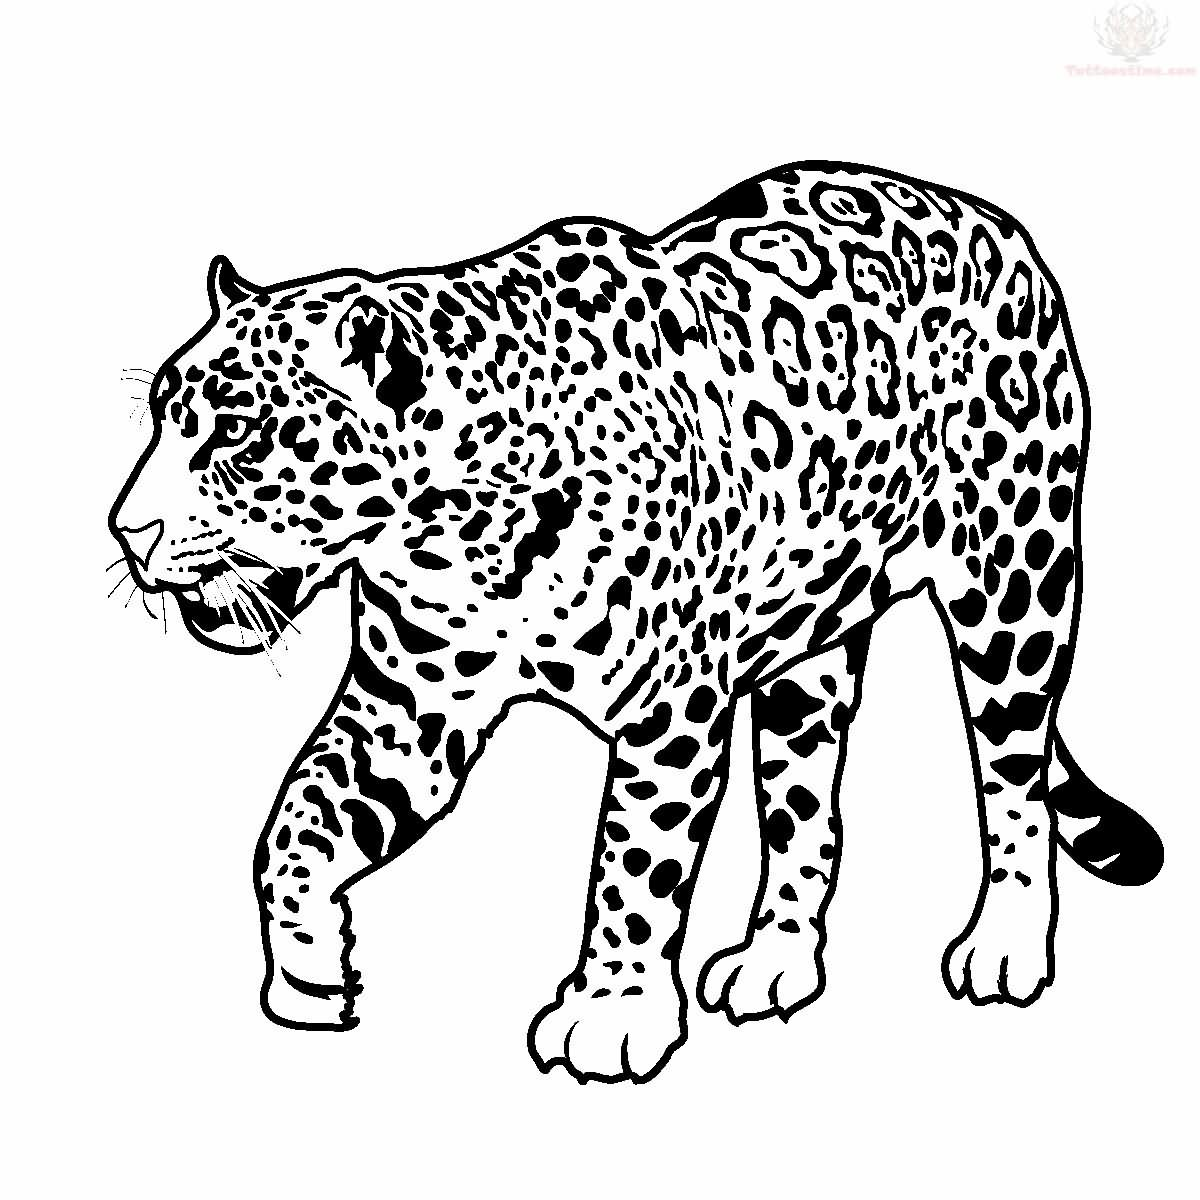 1200x1200 Jaguar Walking Tattoo Design